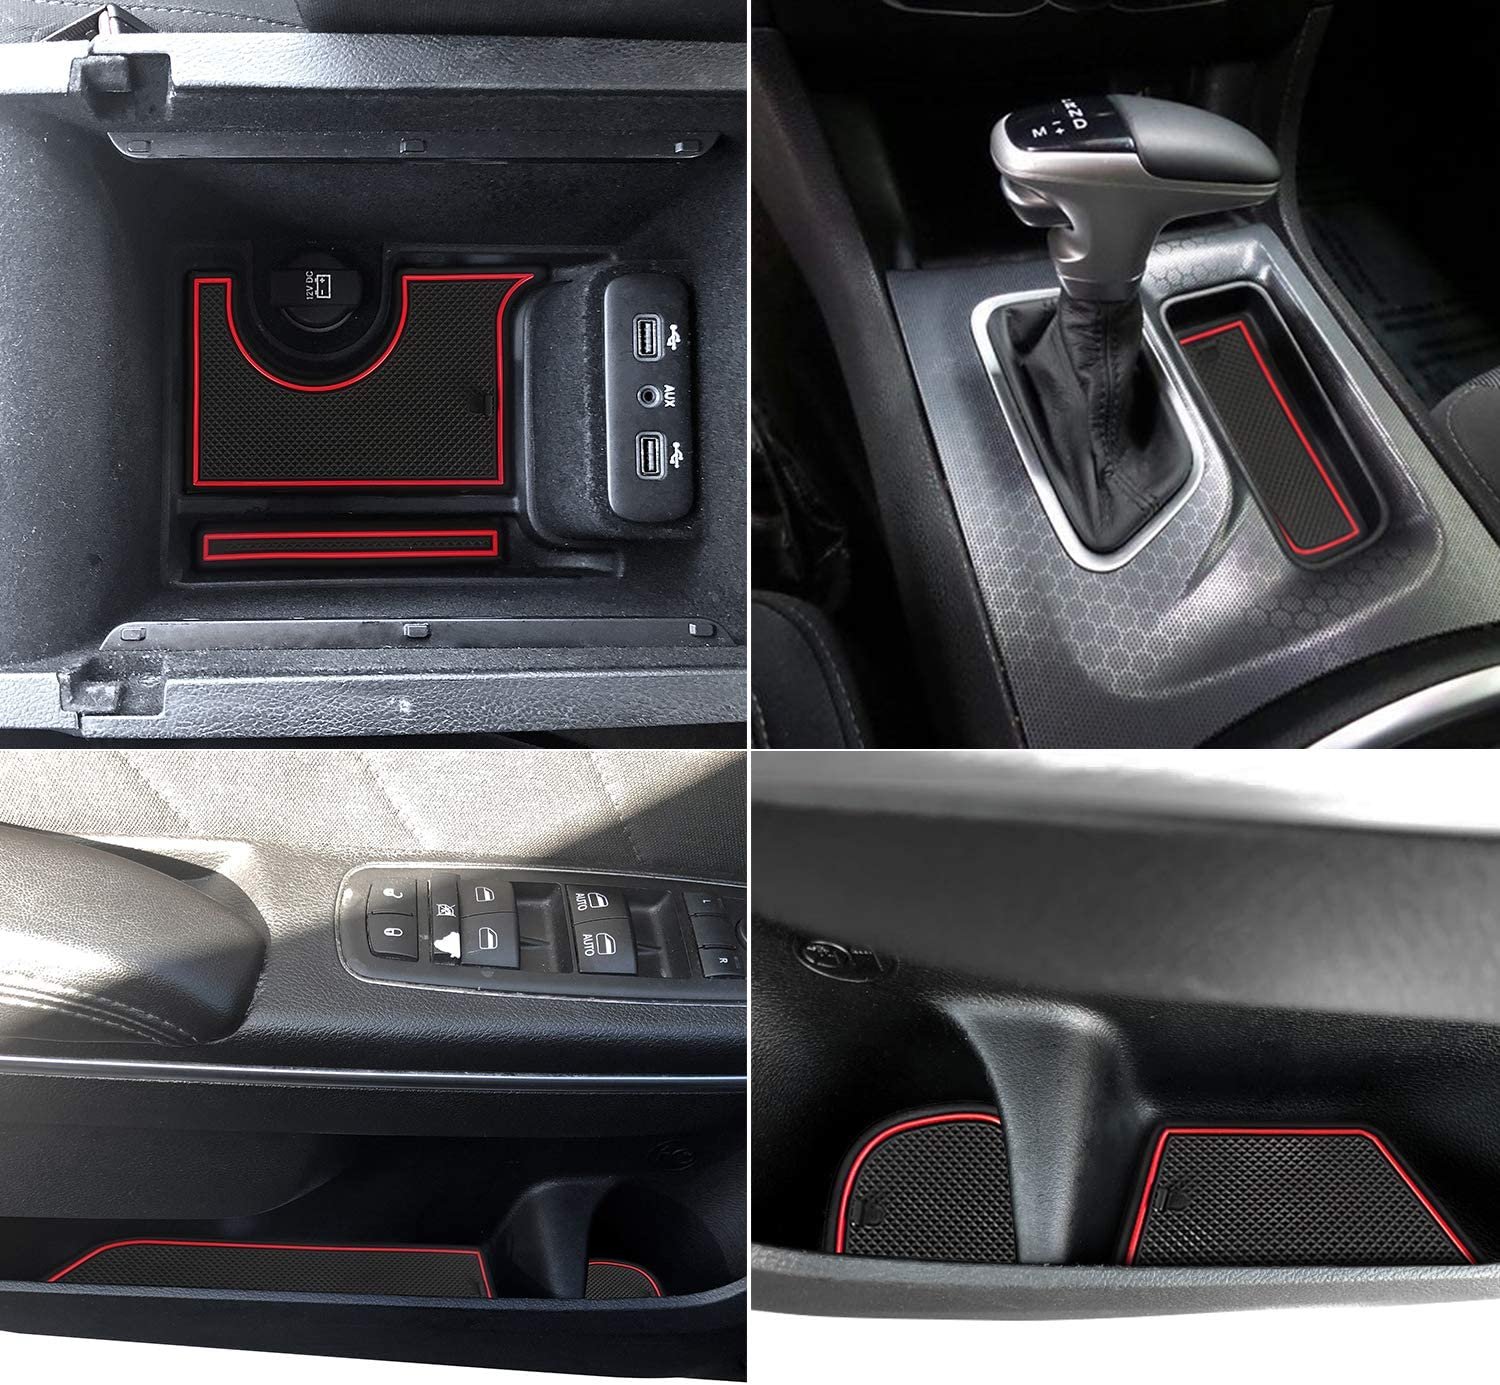 red Auovo Anti dust Mats for Dodge Charger 2015 2016 2017 2018 2019 2020 Accessories Custom Fit Door Pocket Liners Cup Holder Pads Console Mats 22pcs//Set